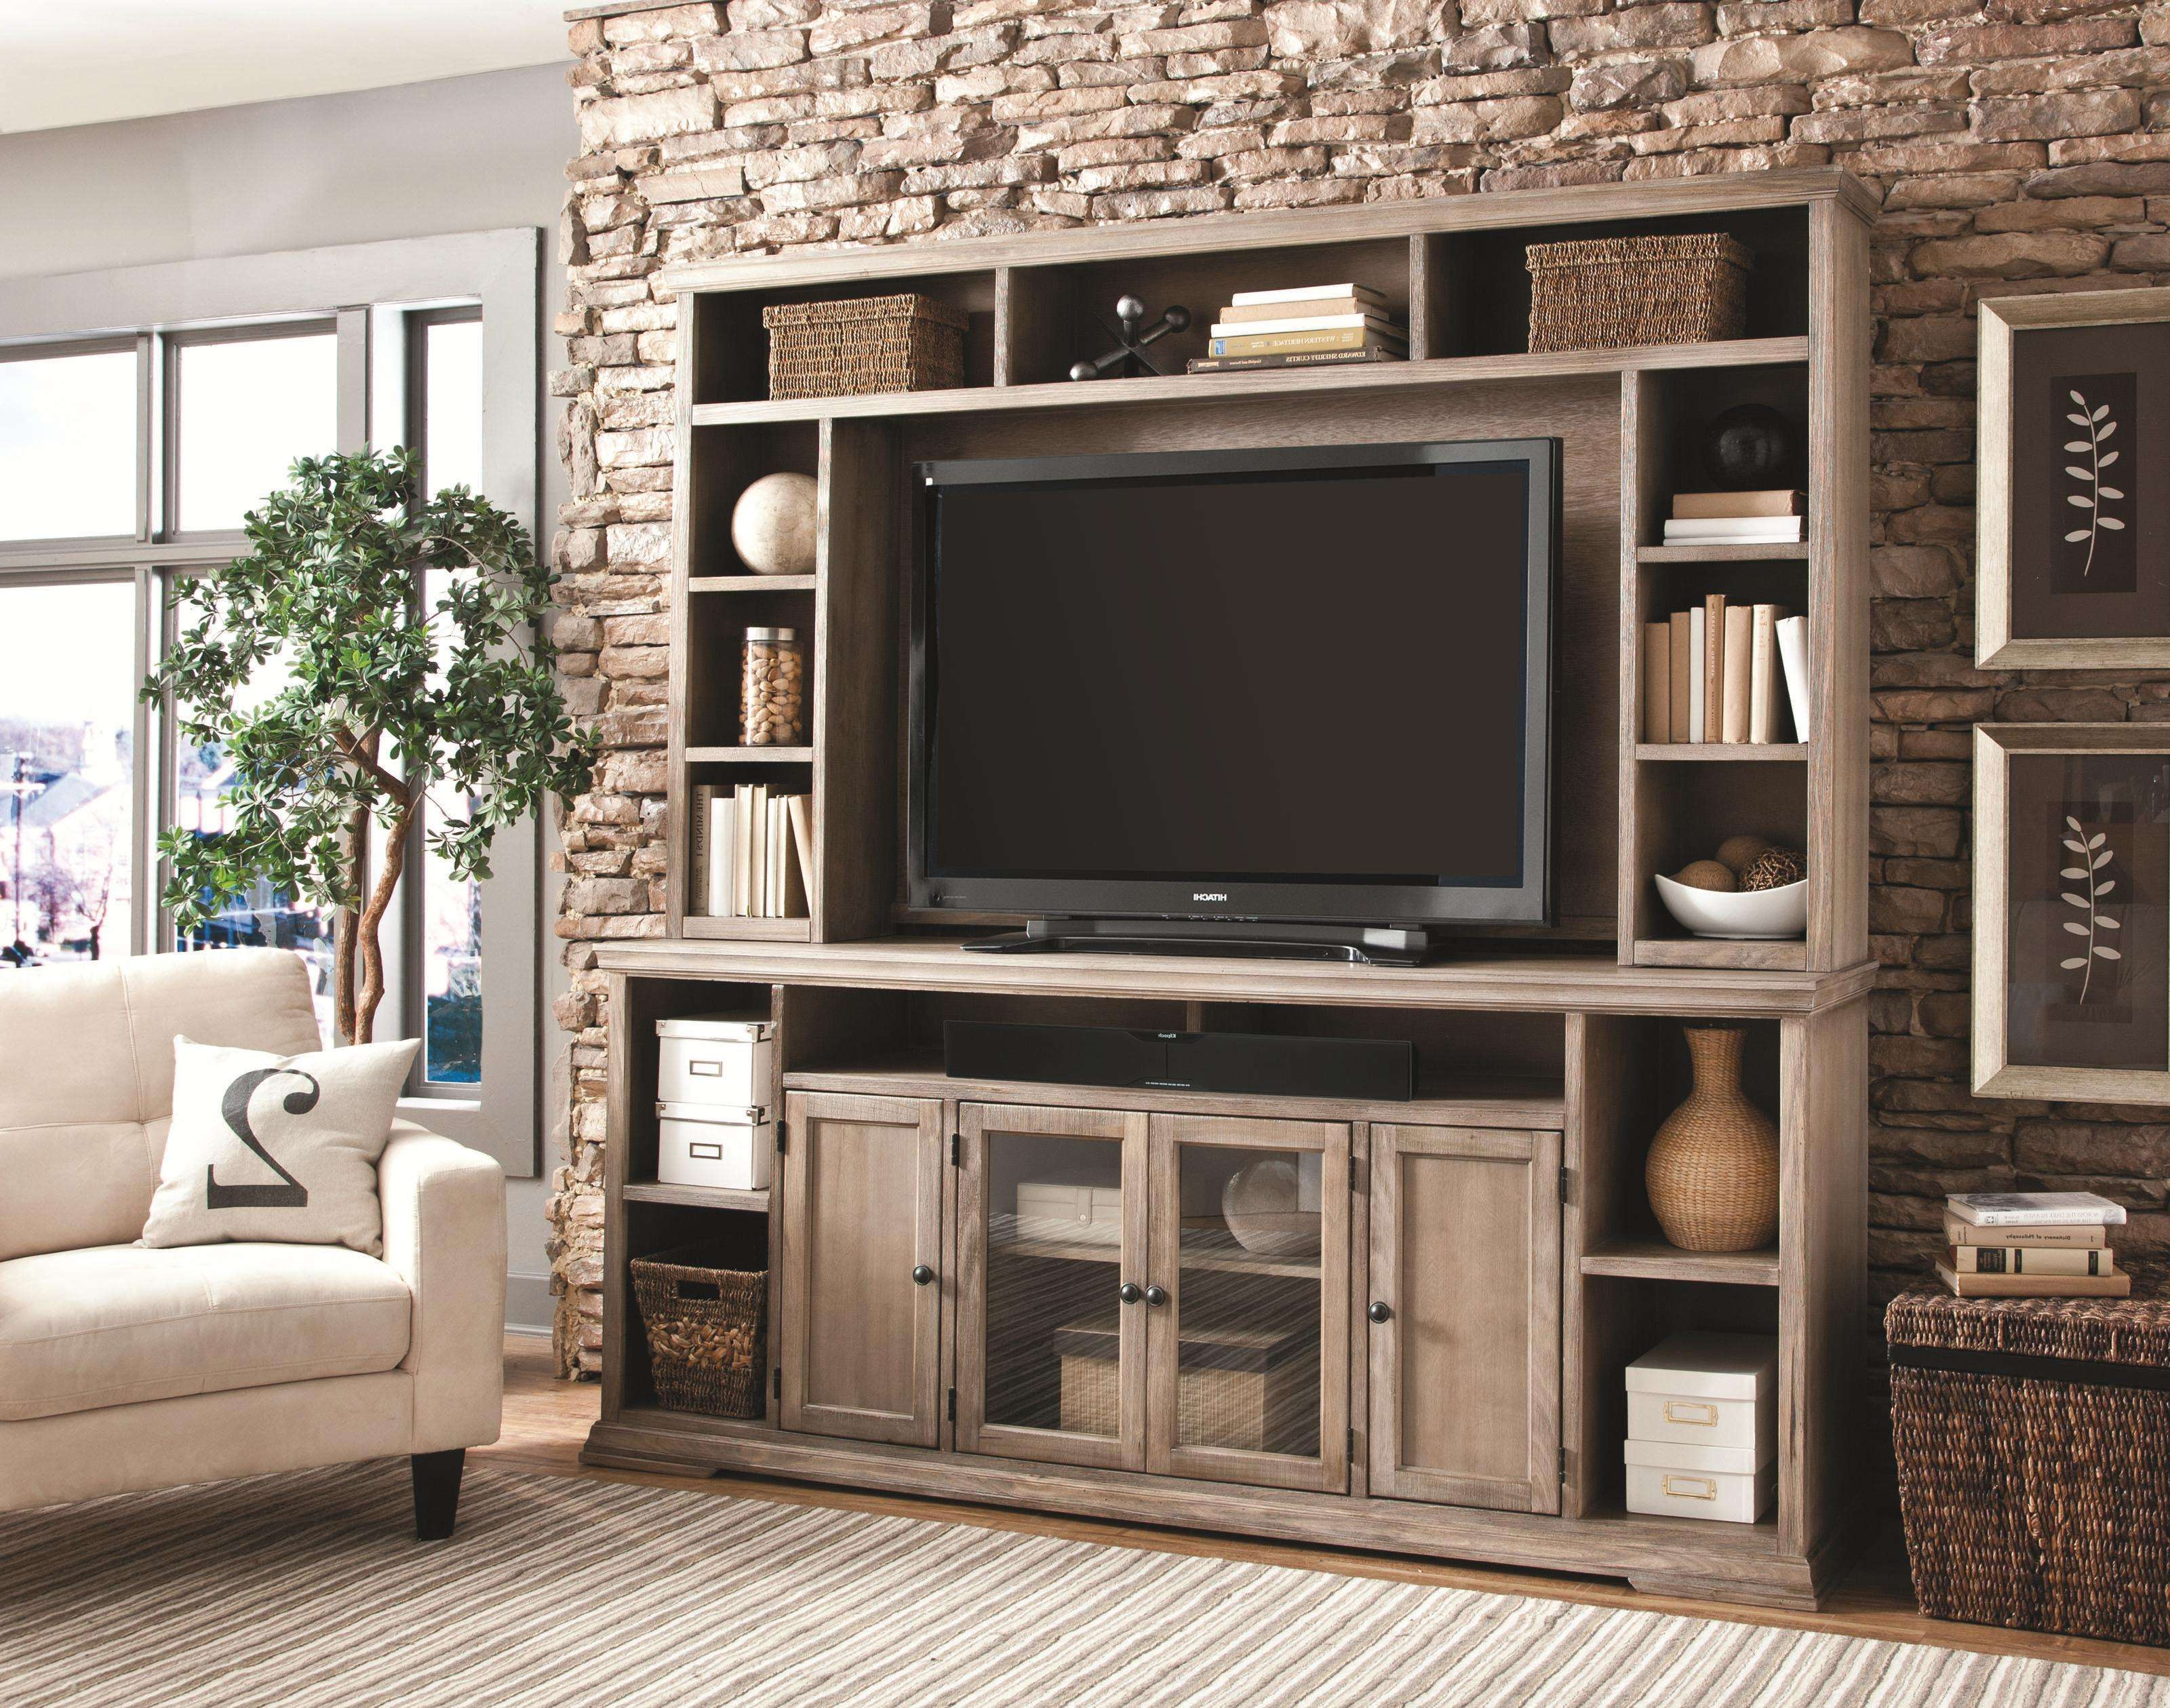 Alluring Custom Made Shabby Cottage Tv Cabinet For Wrap Around Throughout Full Wall Tv Cabinets (View 5 of 20)